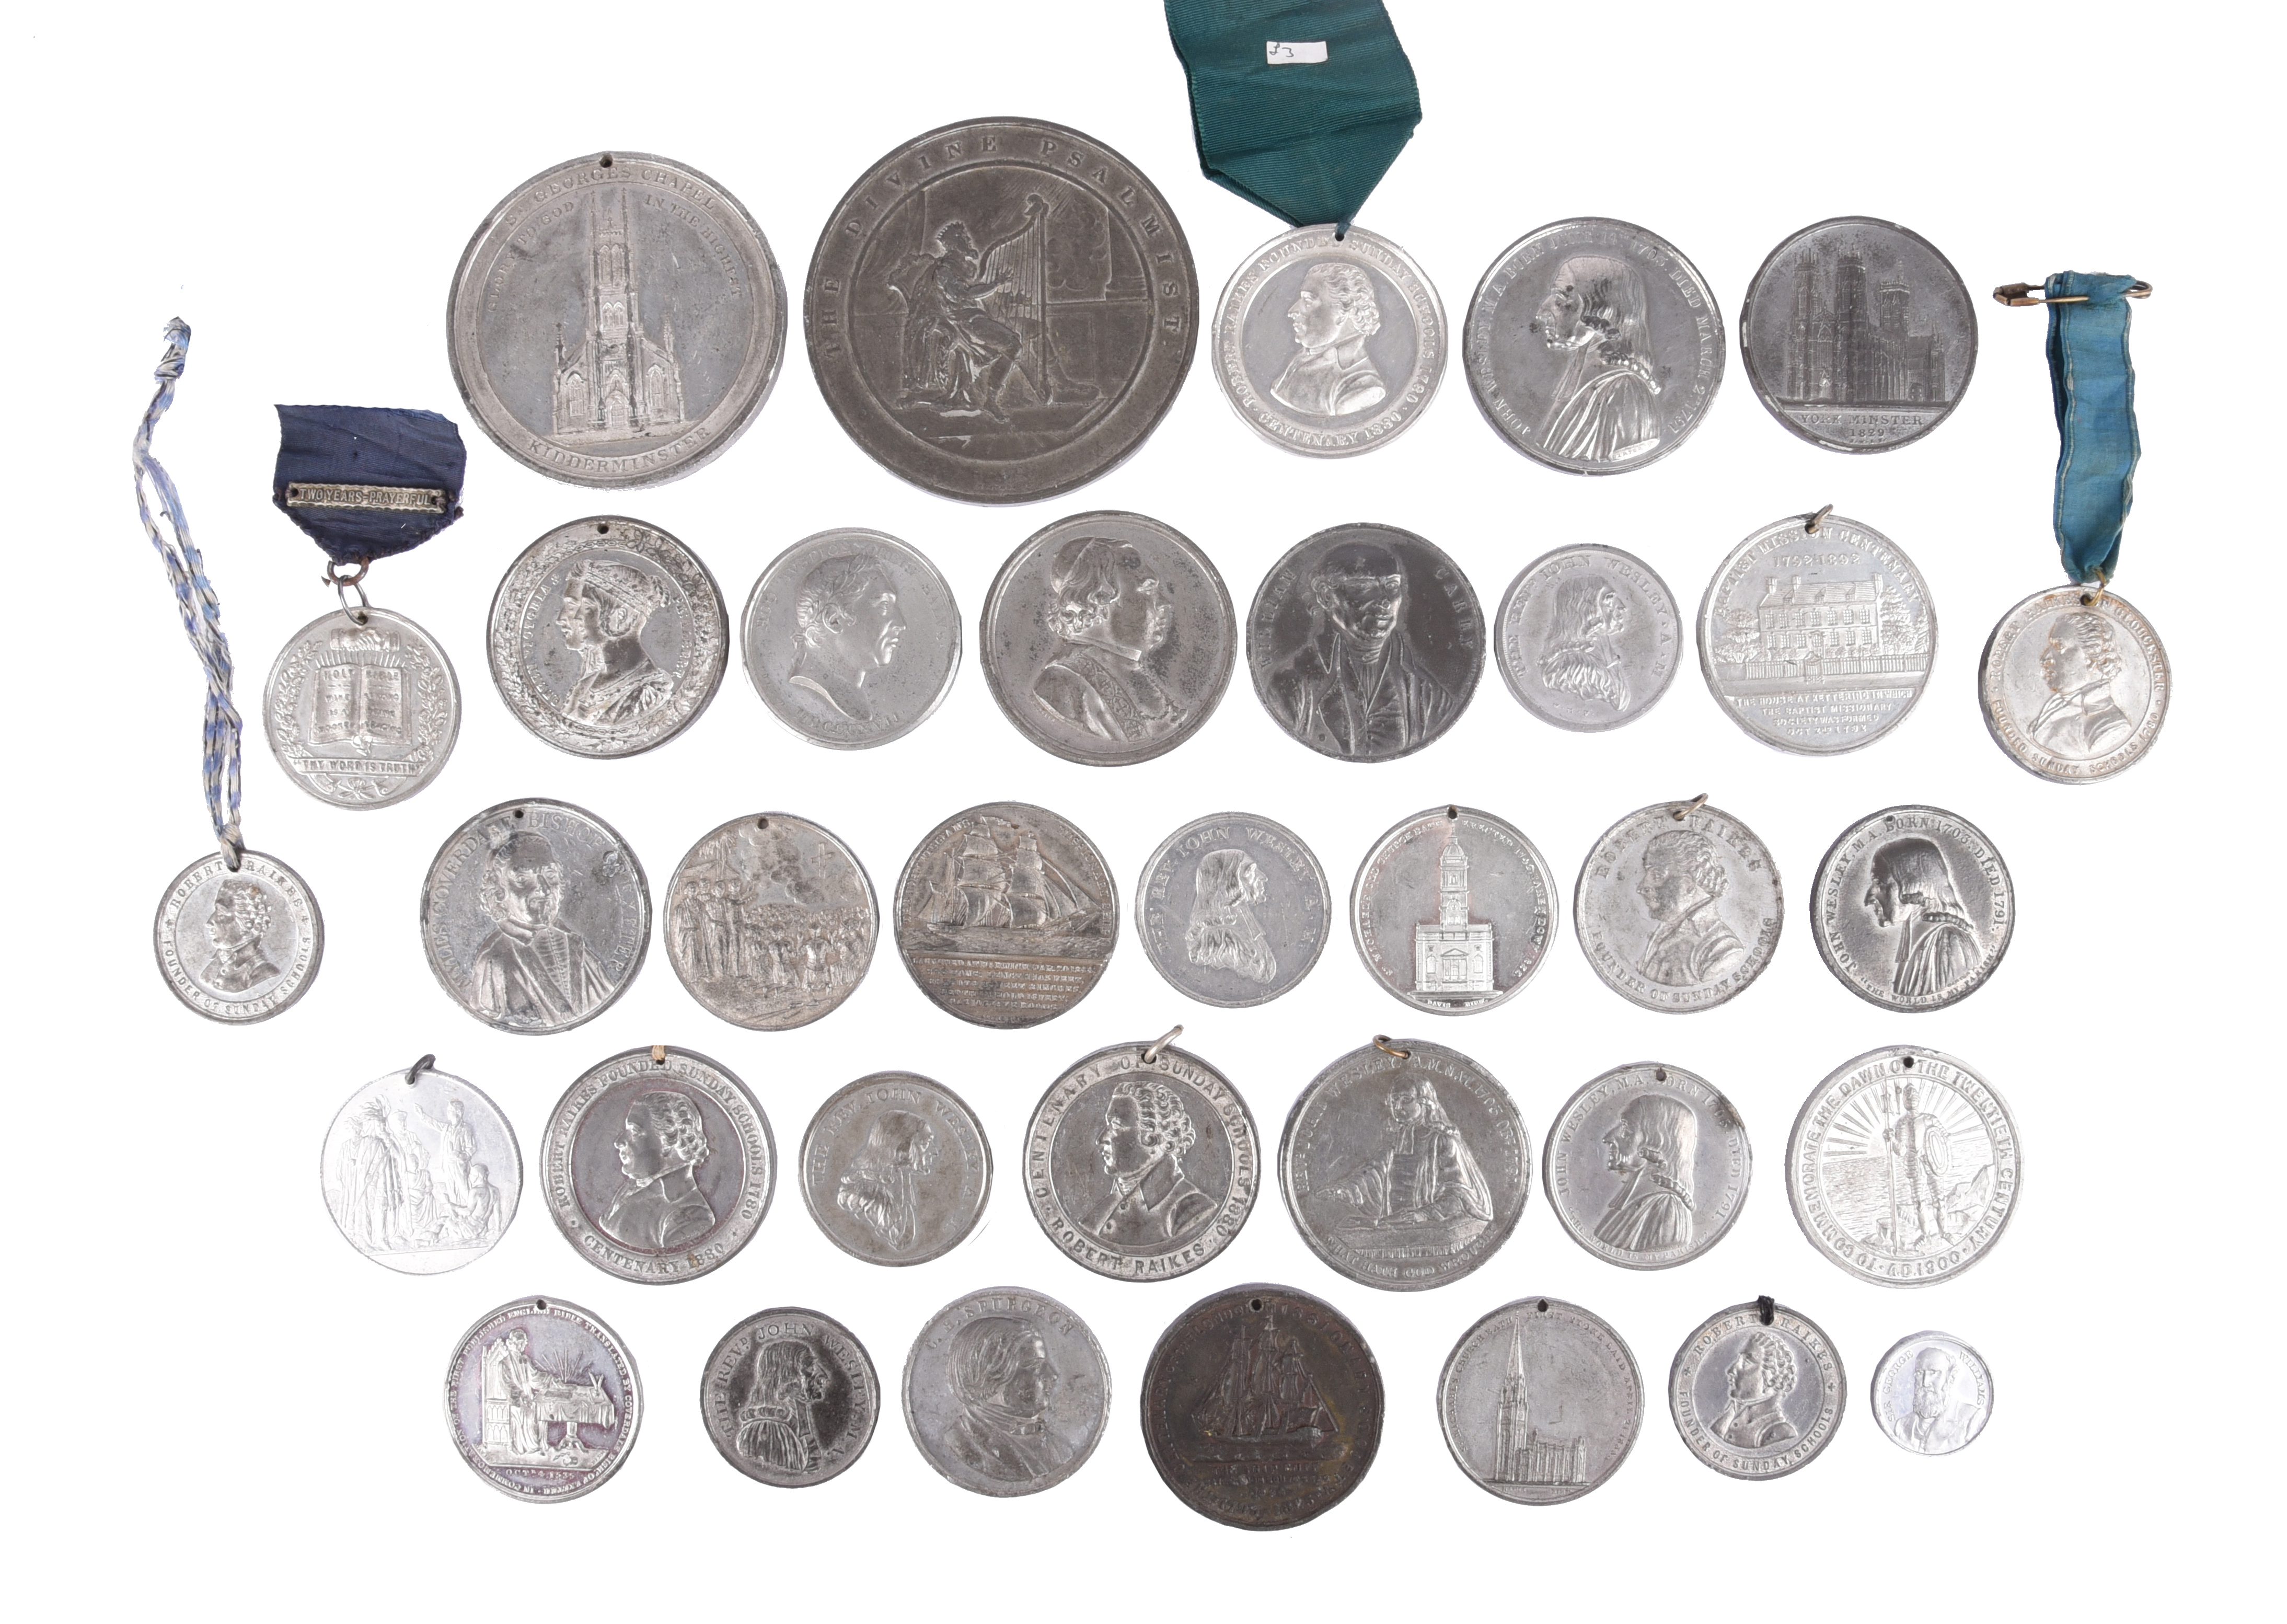 A quantity of historical medals, white metal, various religious subjects including: Wesleyan